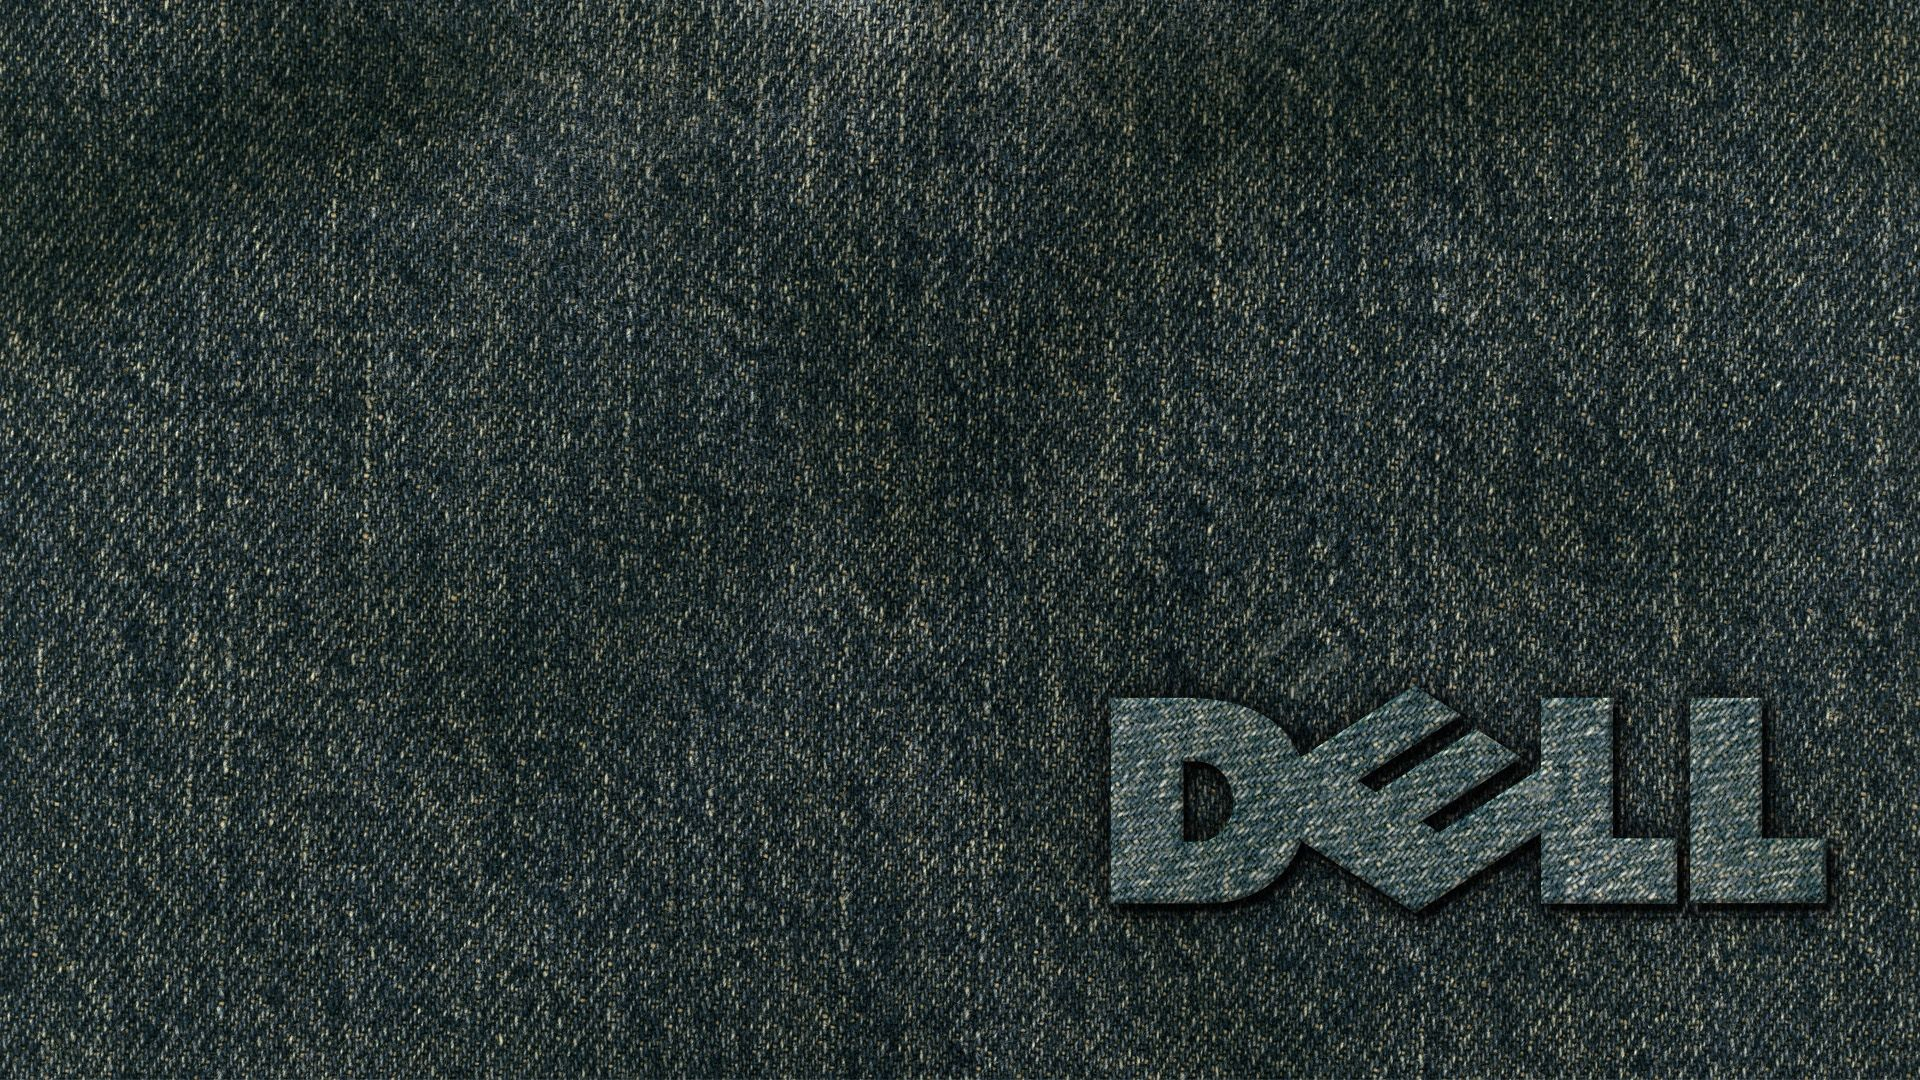 Download Wallpaper 1920x1080 Dell Computers Company Brand Jeans Full Hd 1080p Hd Background Dell Desktop Laptop Wallpaper Desktop Wallpaper